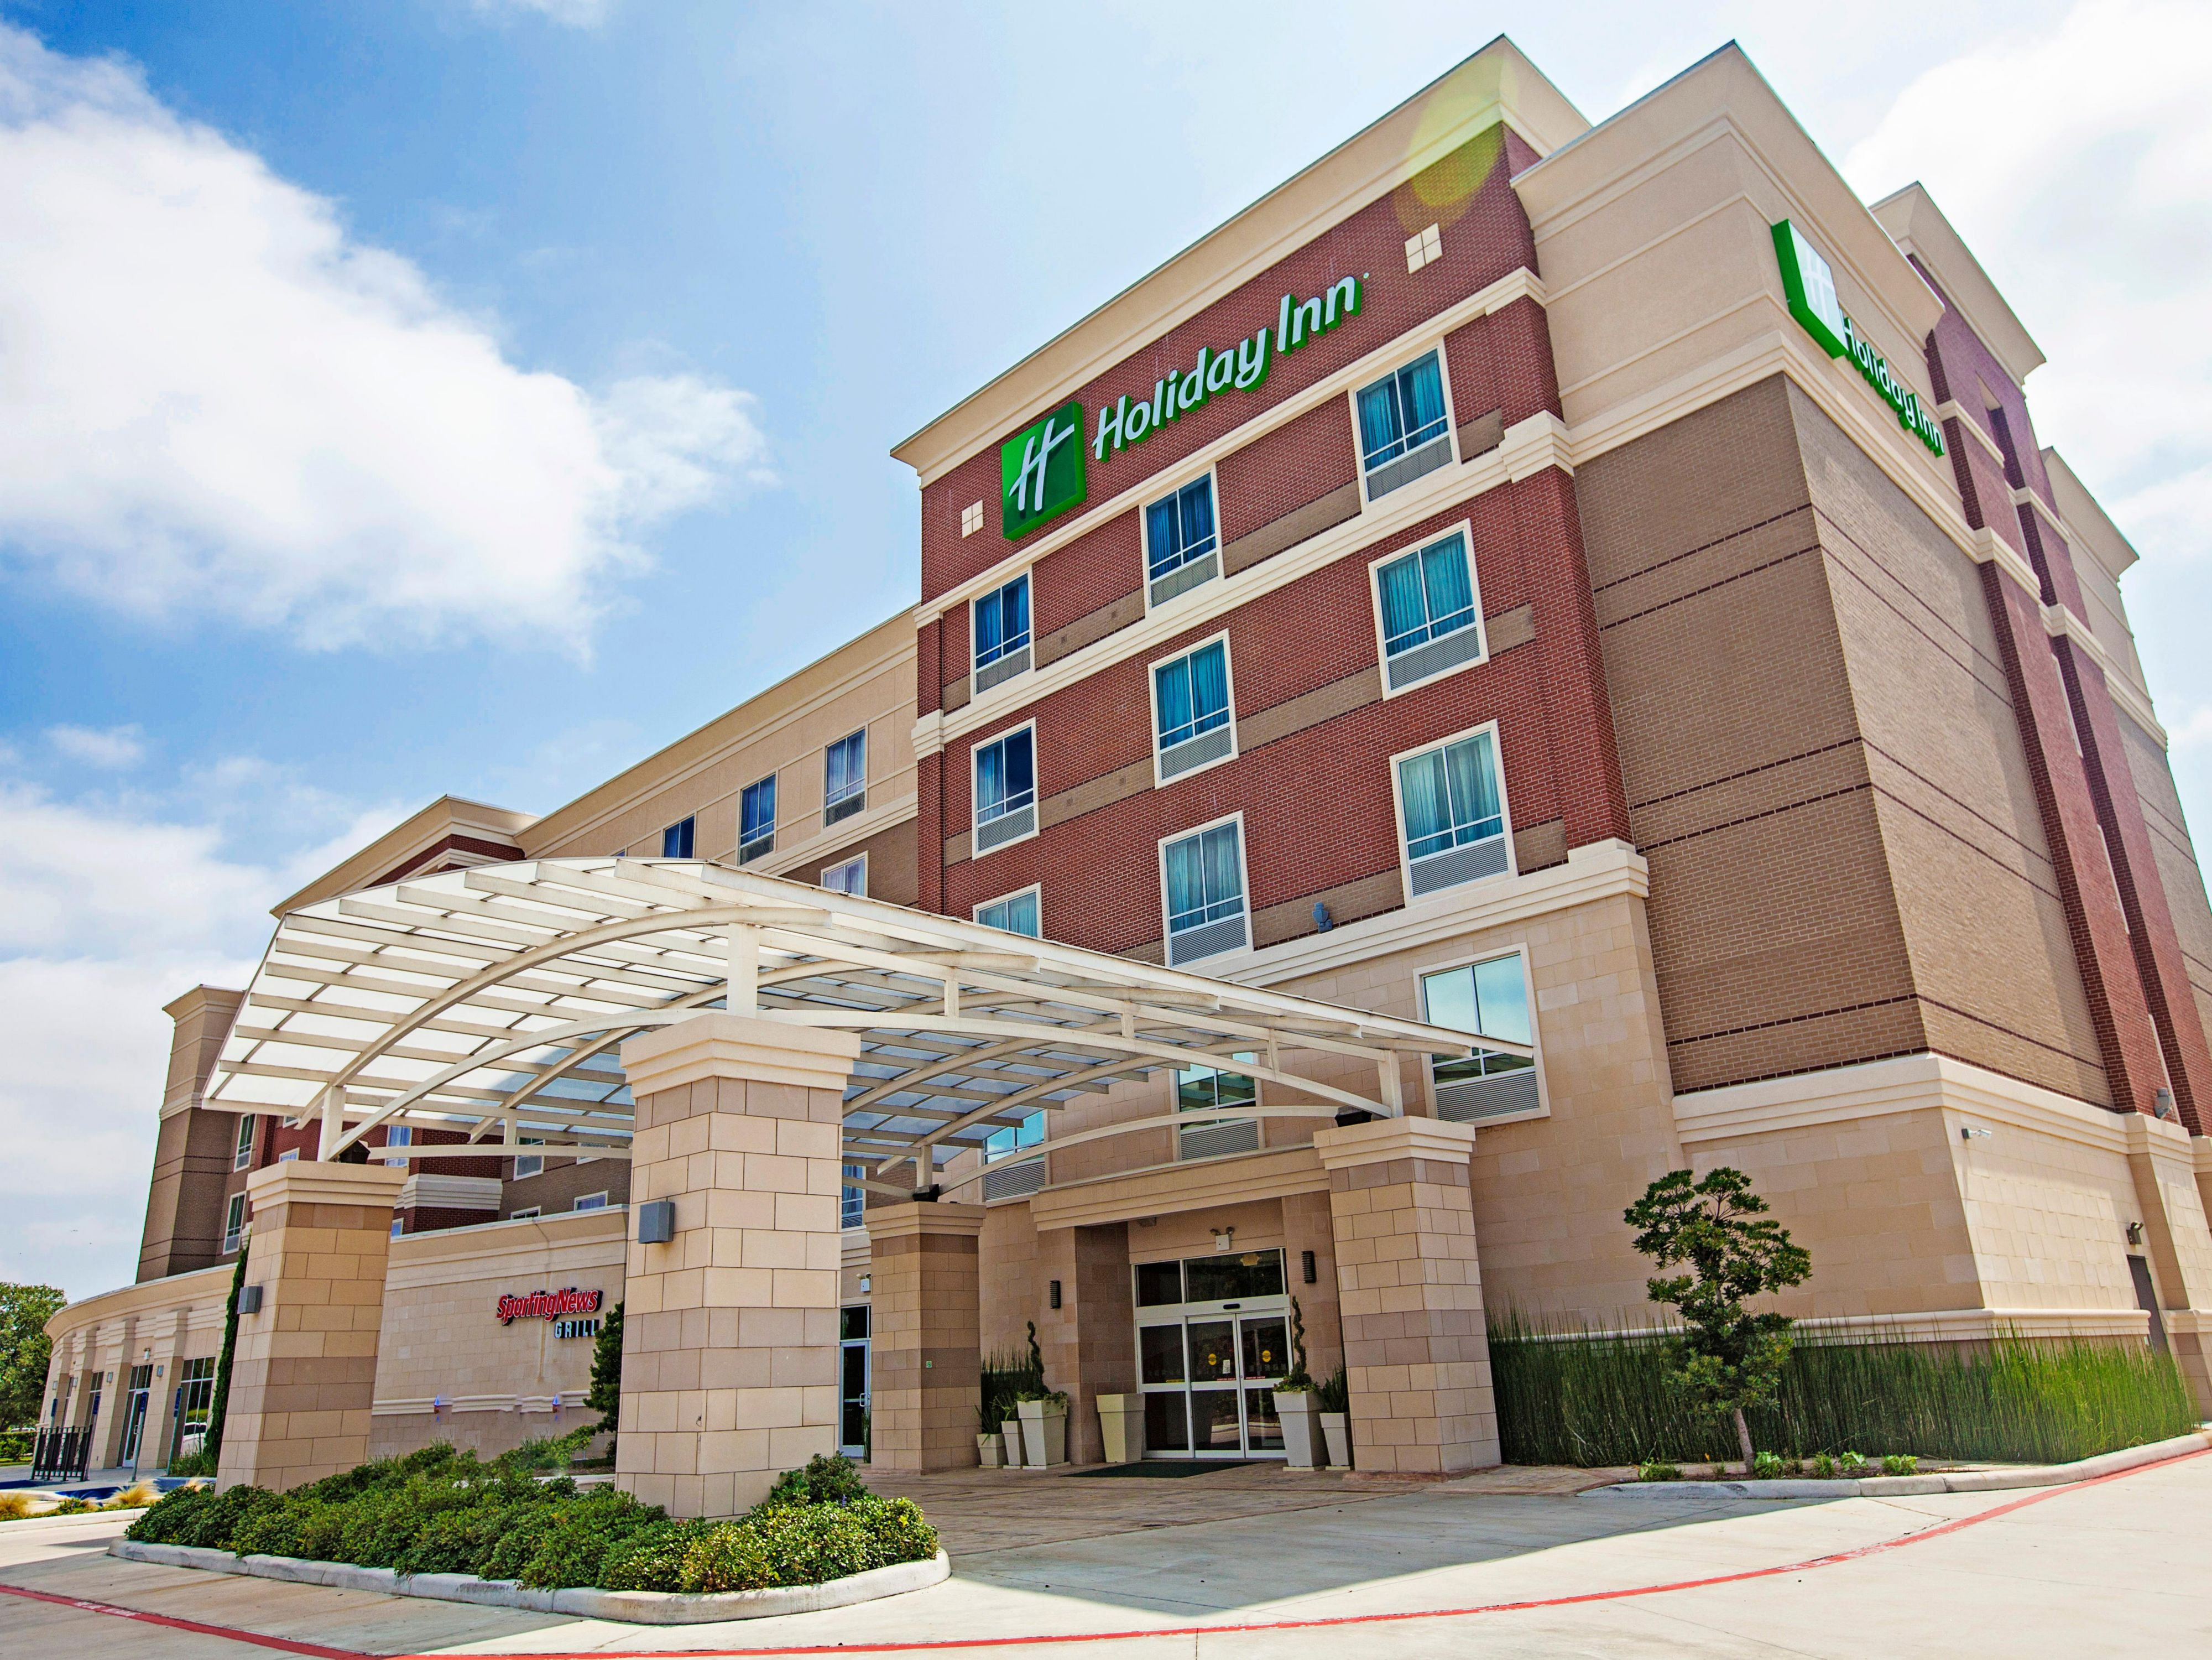 Map Of Hotels In Houston Tx on